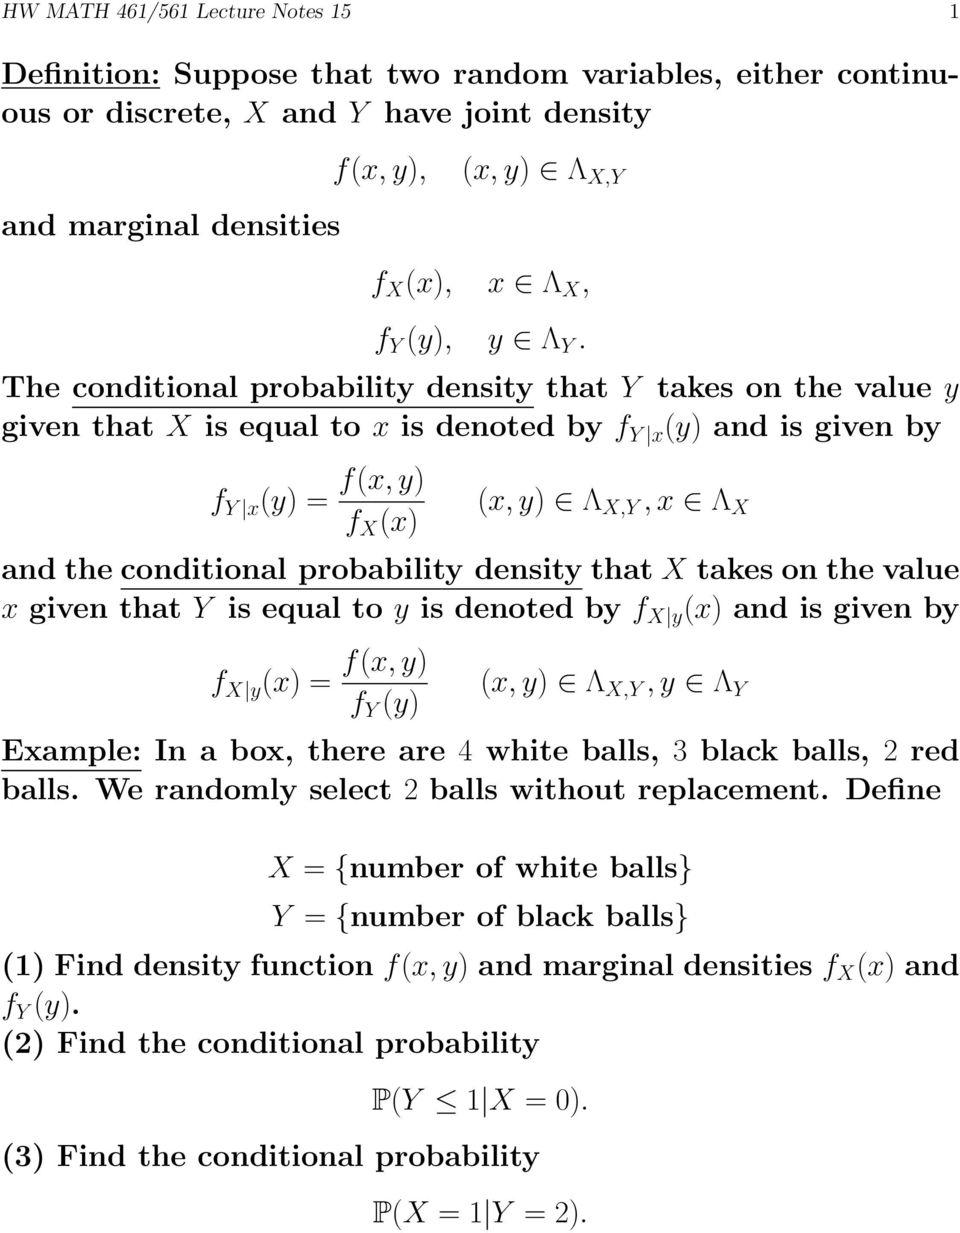 The conditional probability density that Y takes on the value y given that X is equal to x is denoted by f Y x (y) and is given by f Y x (y) = f(x, y) f X (x) (x, y) Λ X,Y, x Λ X and the conditional